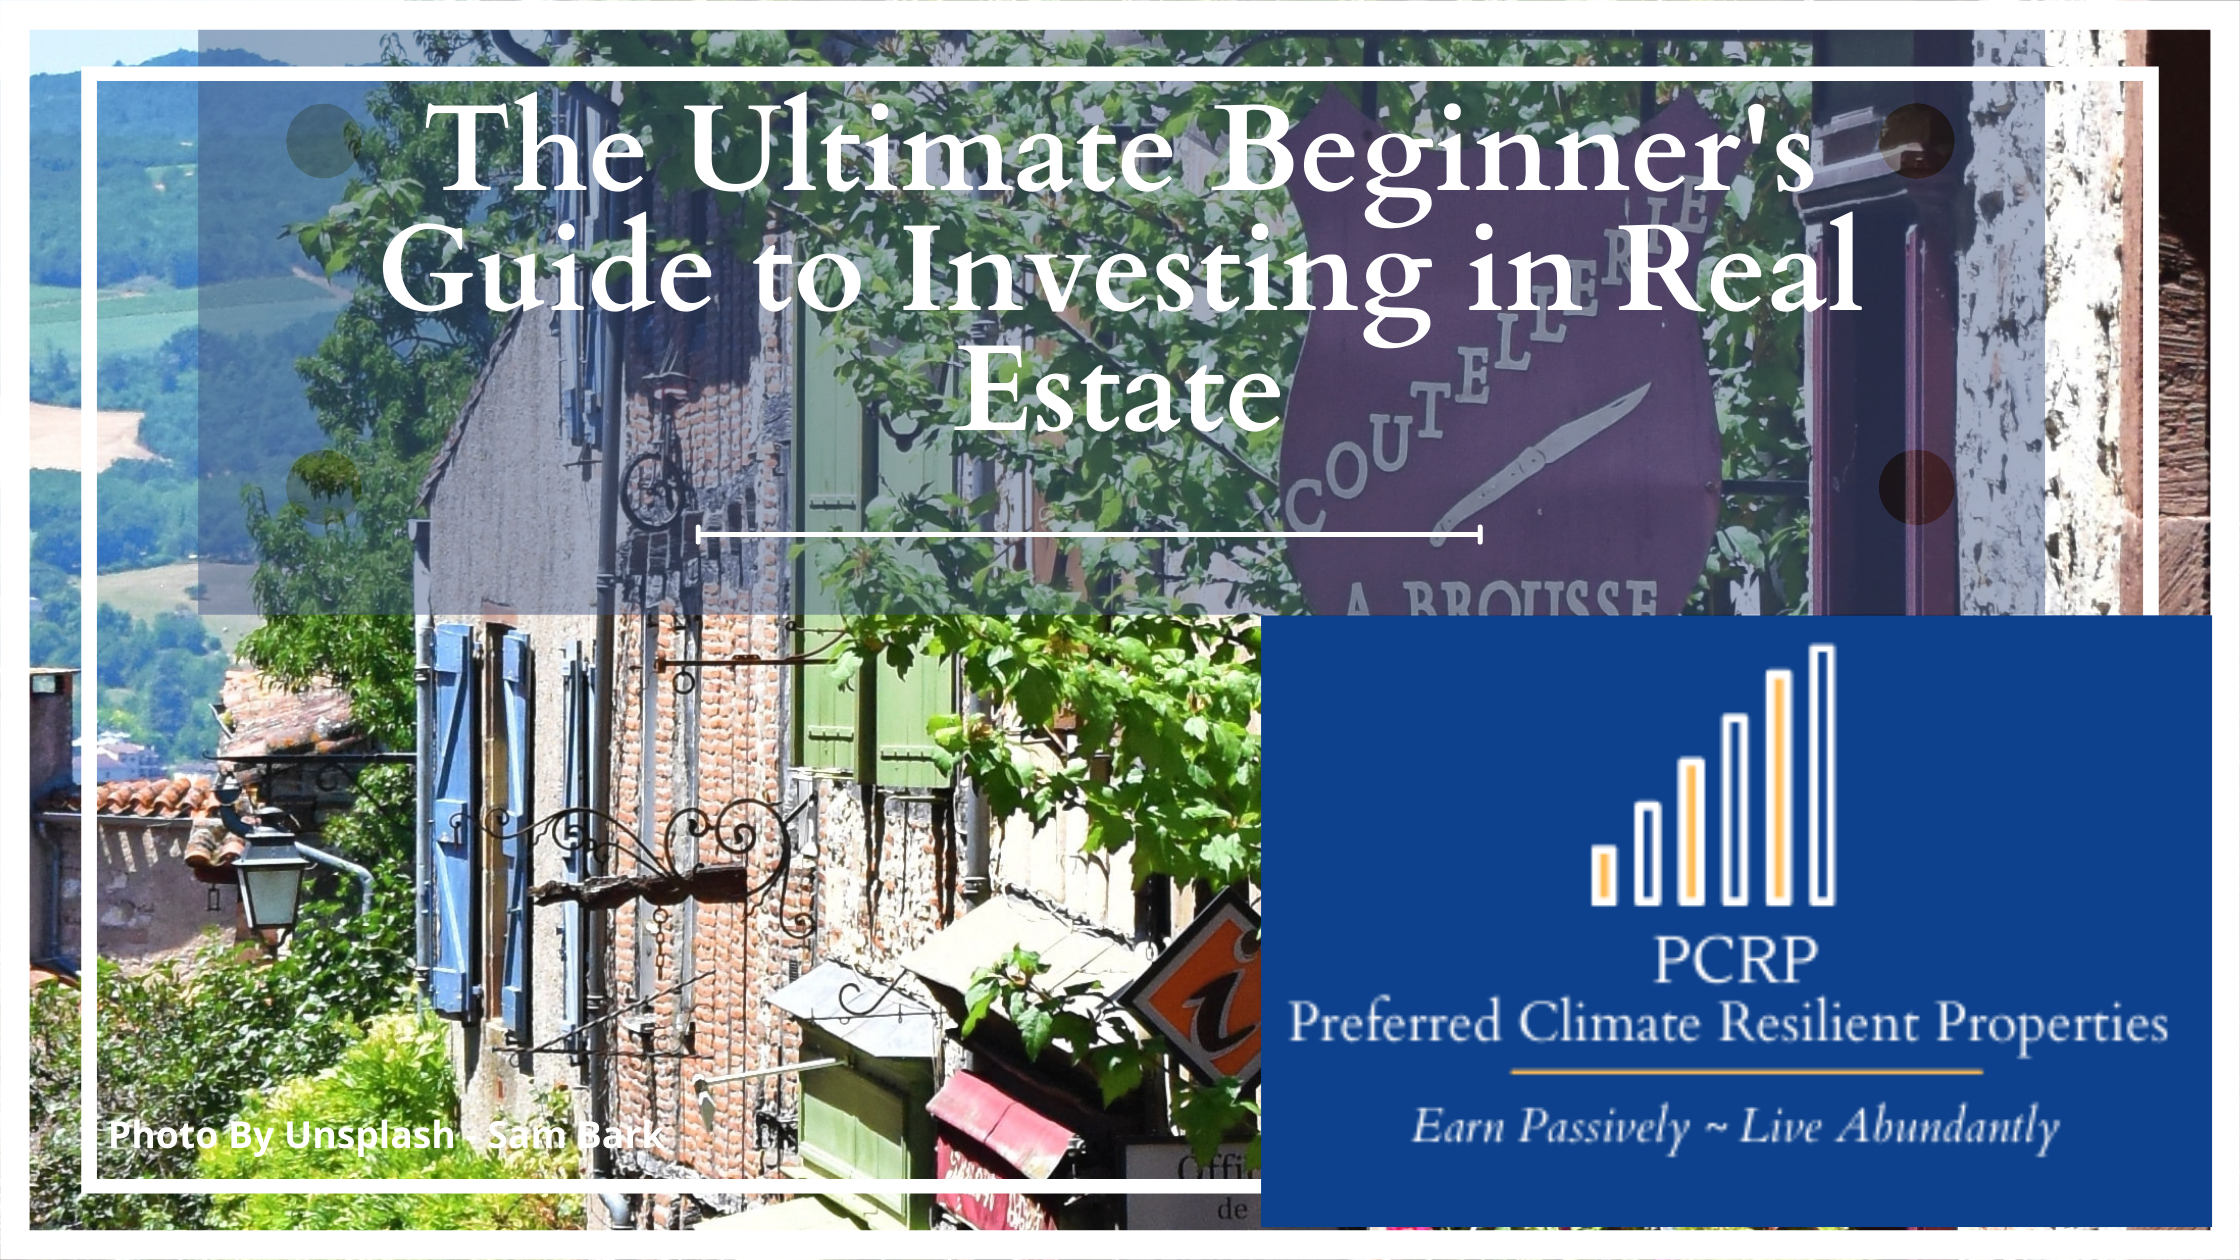 The Ultimate Beginner's Guide to Investing - Picture of European town